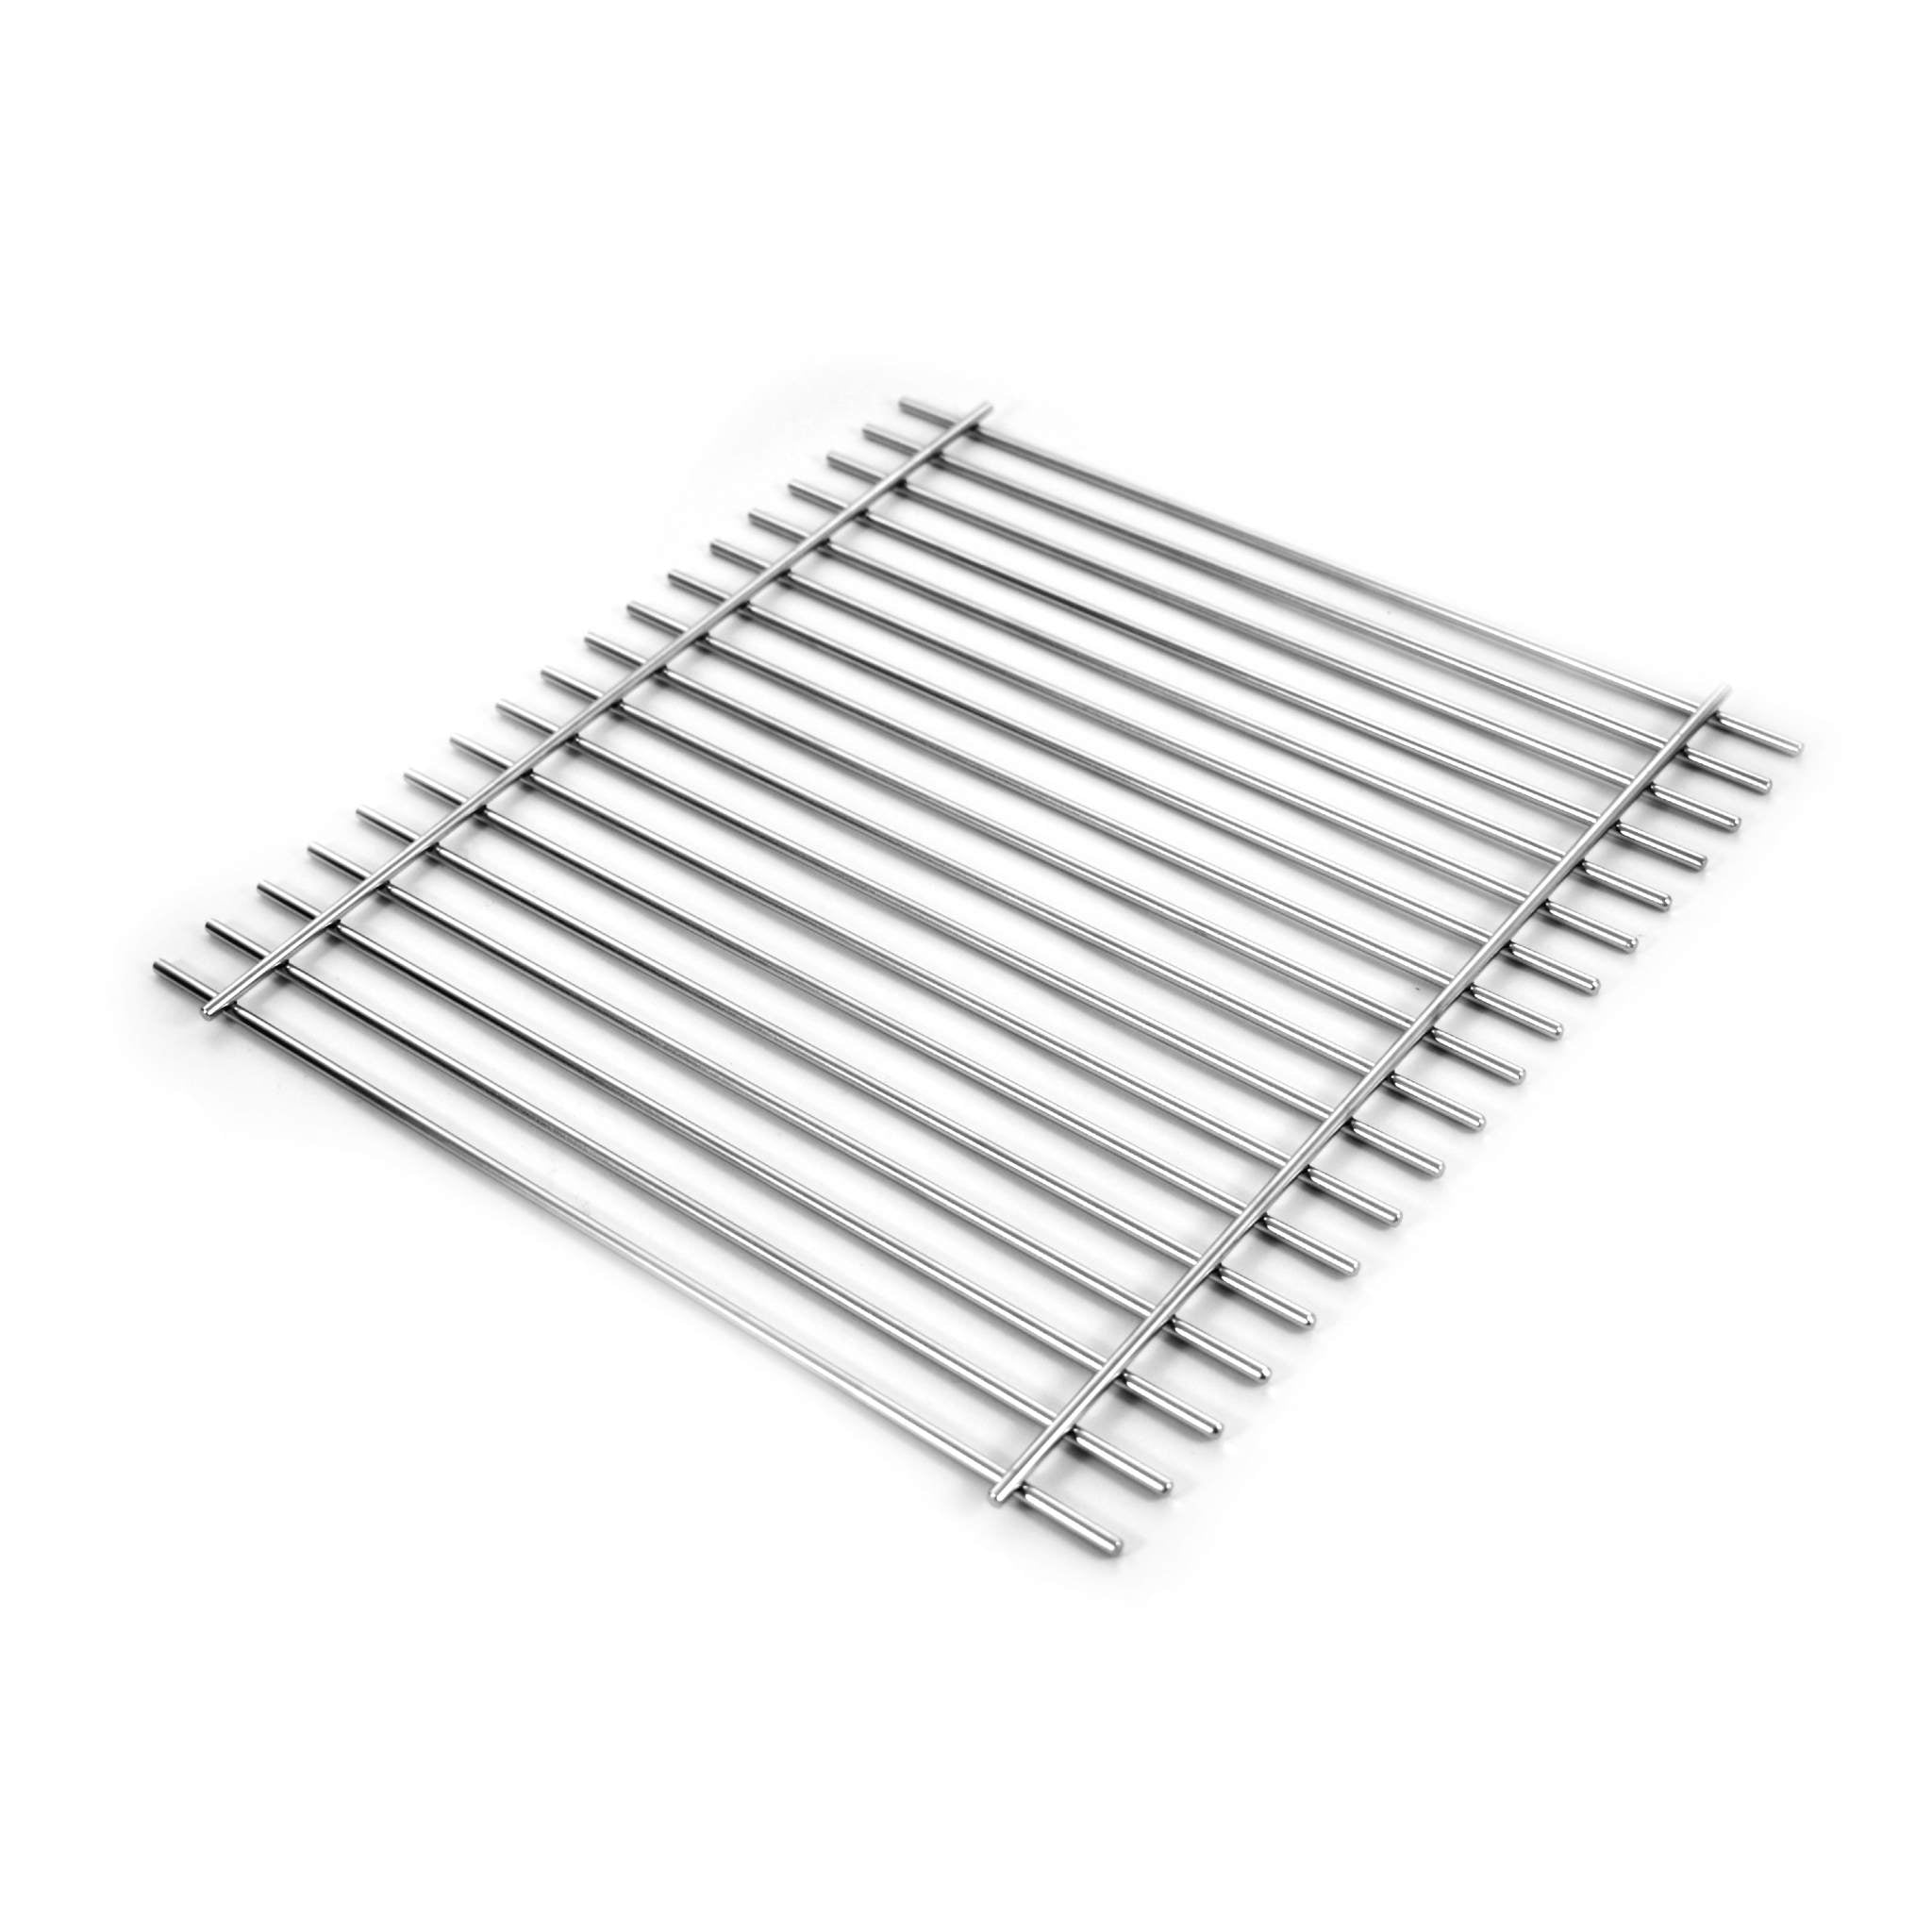 Thuros Baikal - Additional Grate